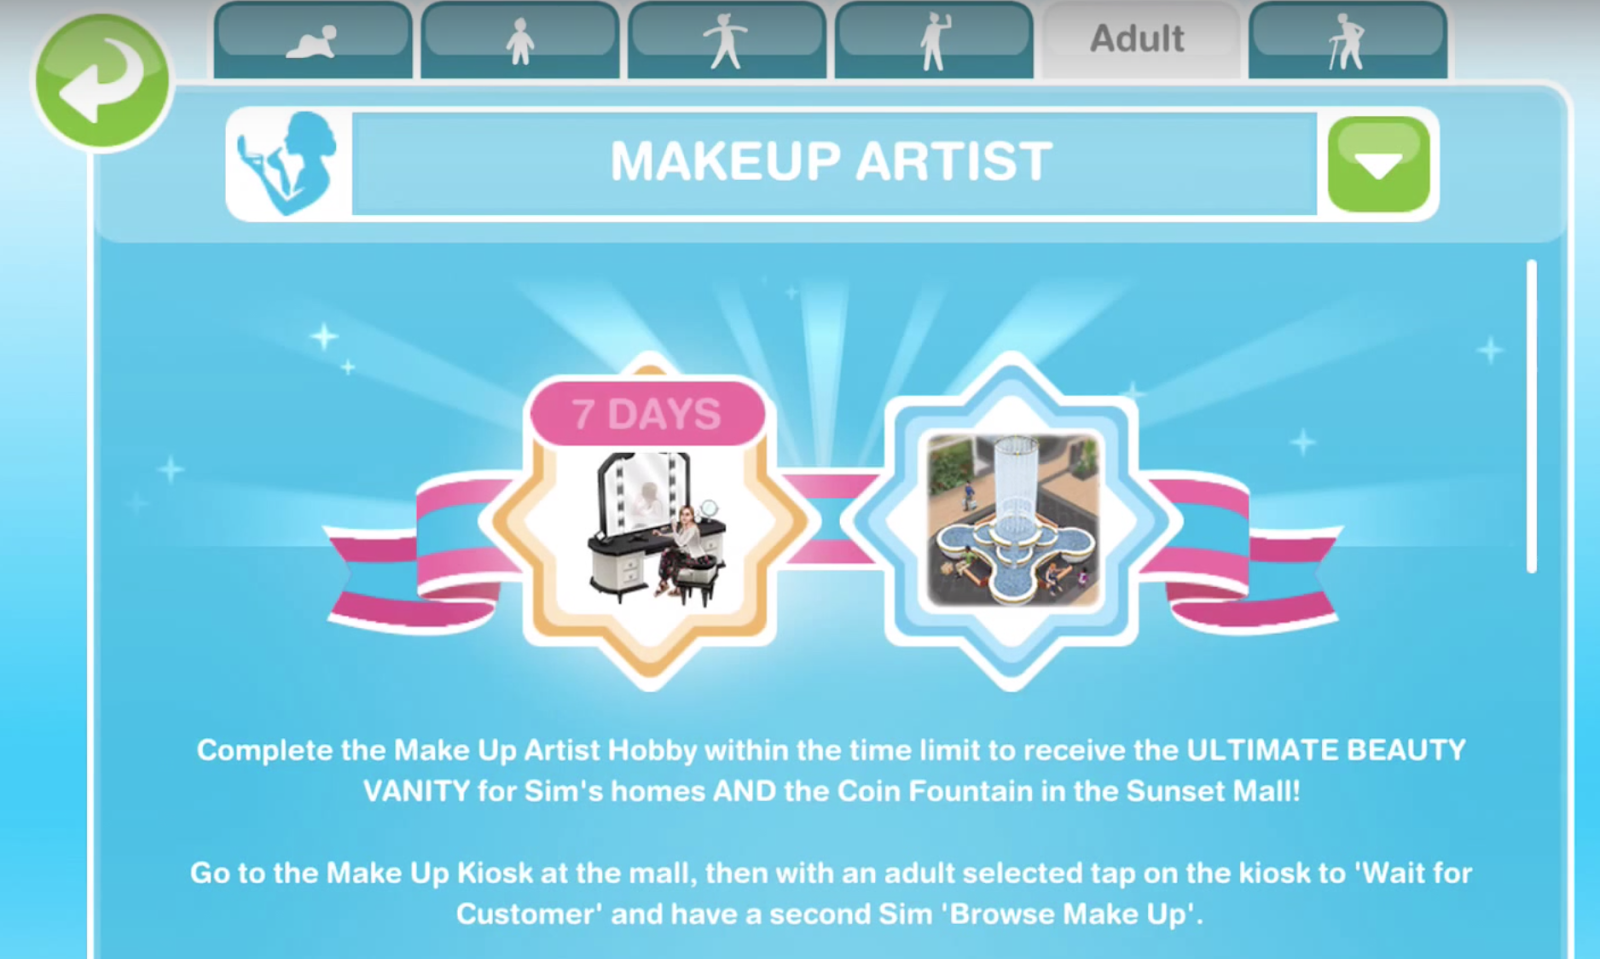 How To Use Coffee Maker In Sims Freeplay : Sims Freeplay Make Up Artist Hobby Glitz And Glam ...